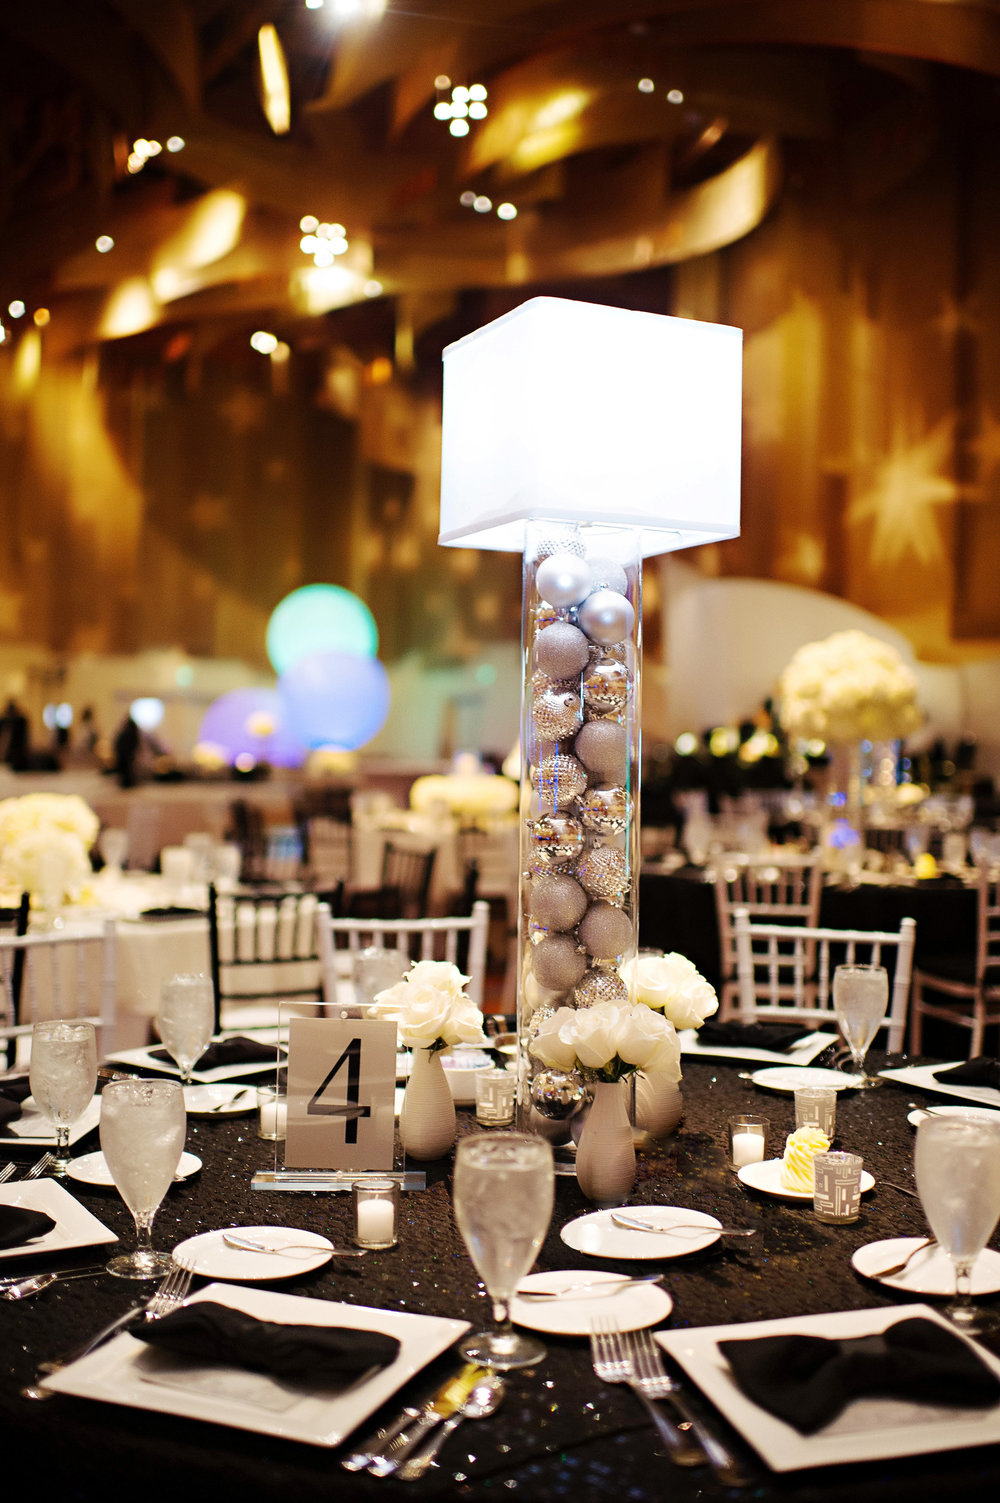 Courtenay Lambert Florals and Event Design, http:courtenaylambert.com.  Wedding of Sarah Haas & David Habel at Duke Energy Center in Cincinnati Ohio.  Gorgeous photography by Kortnee Kate, and flowers and event design by Courtenay Lambert Floral and Event Design. Ornament. Glitter. Sparkle. Christmas Wedding. Wedding florist and designer Cincinnati